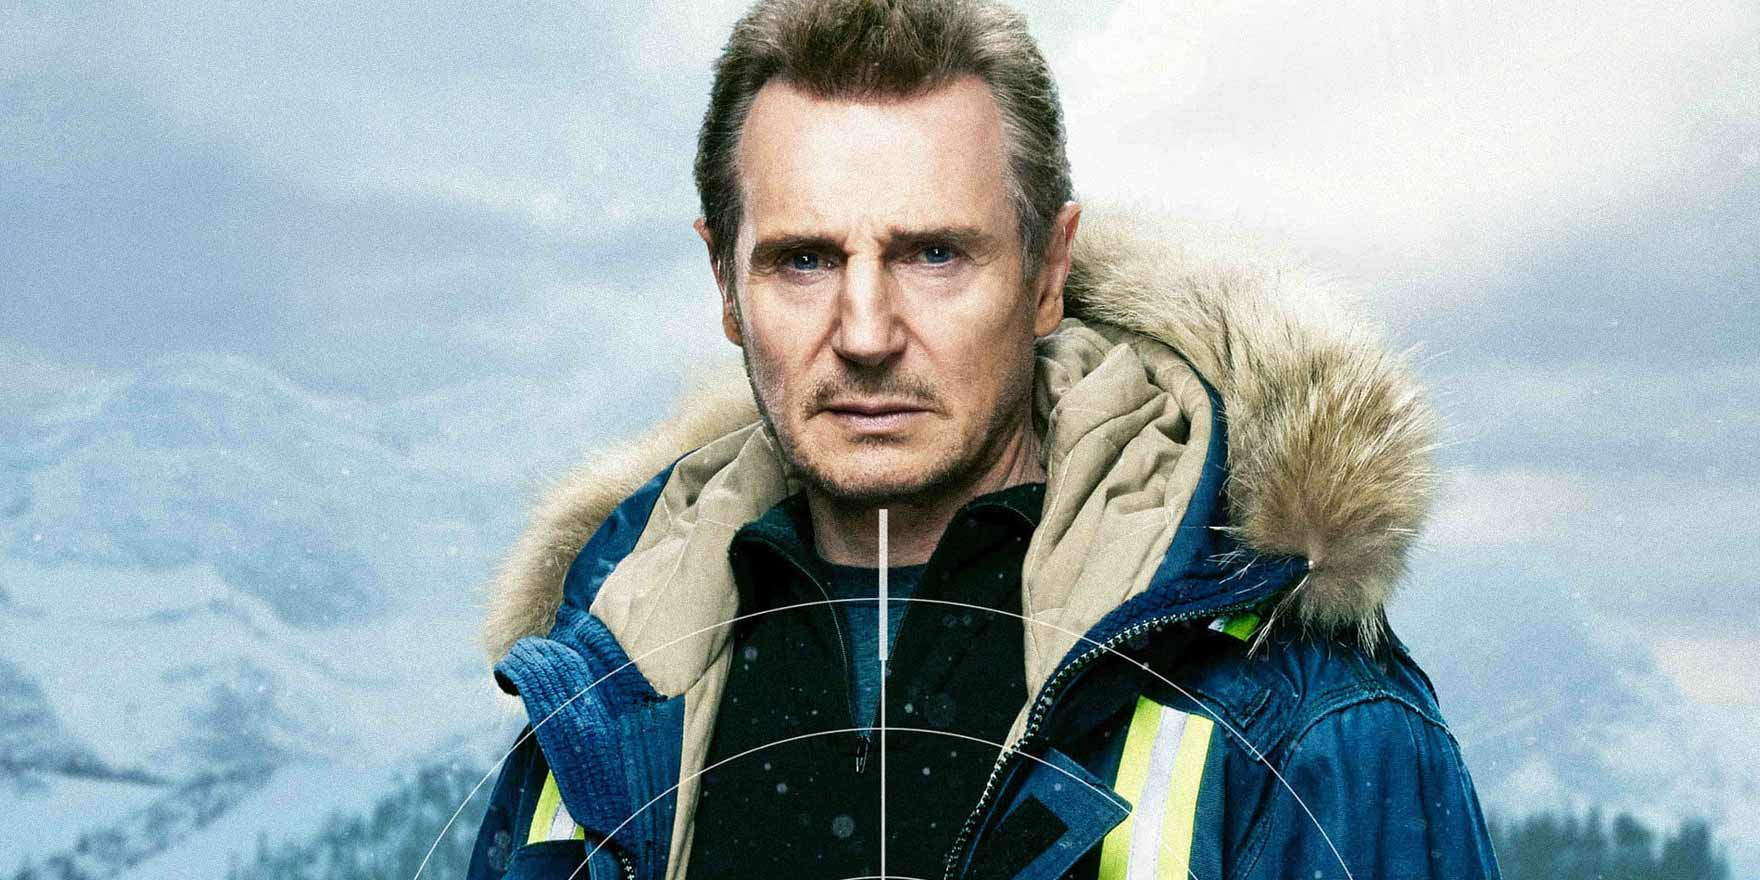 Cold Pursuit - Header Image